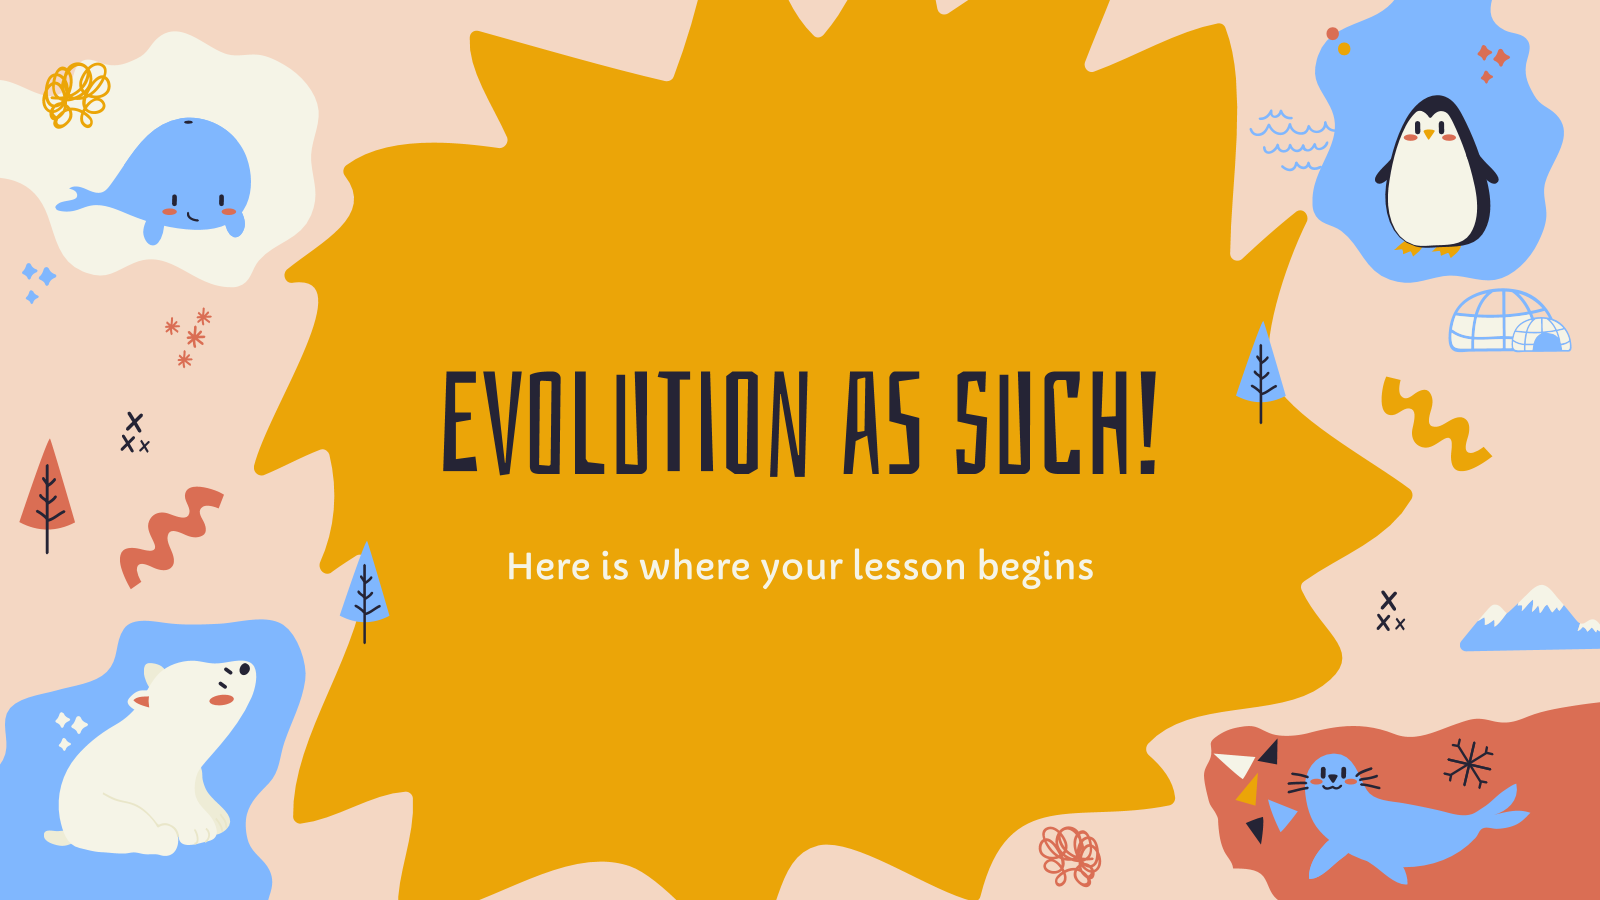 Evolution as Such! presentation template